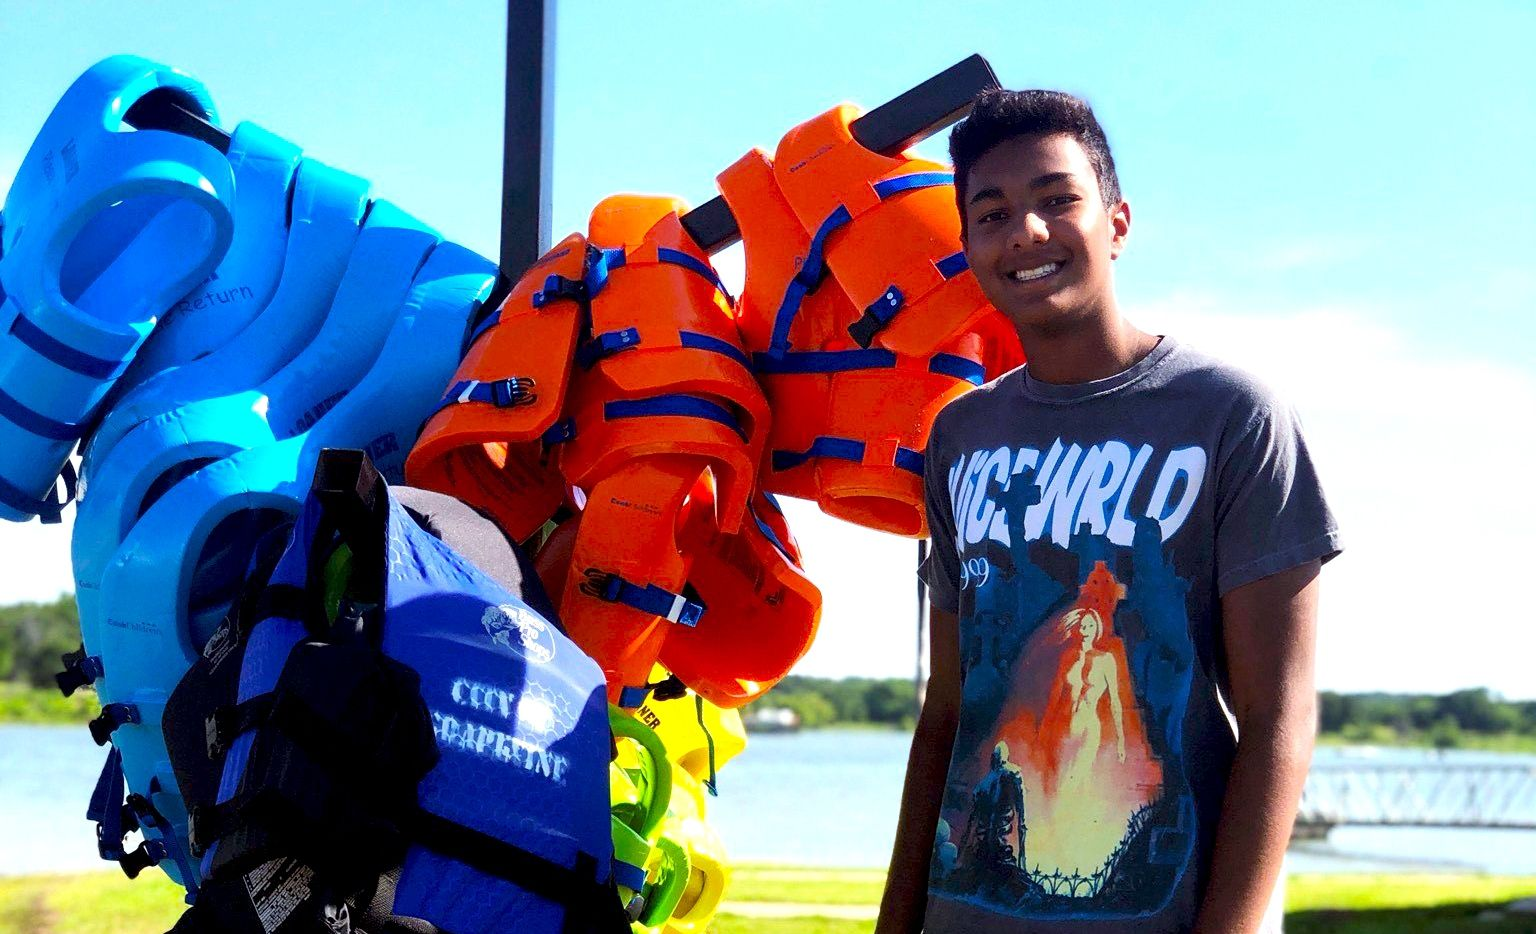 Rohan Rumalla raised more than $6,000 for the Grapevine Fire Department's Loan-a-Life Jacket program.